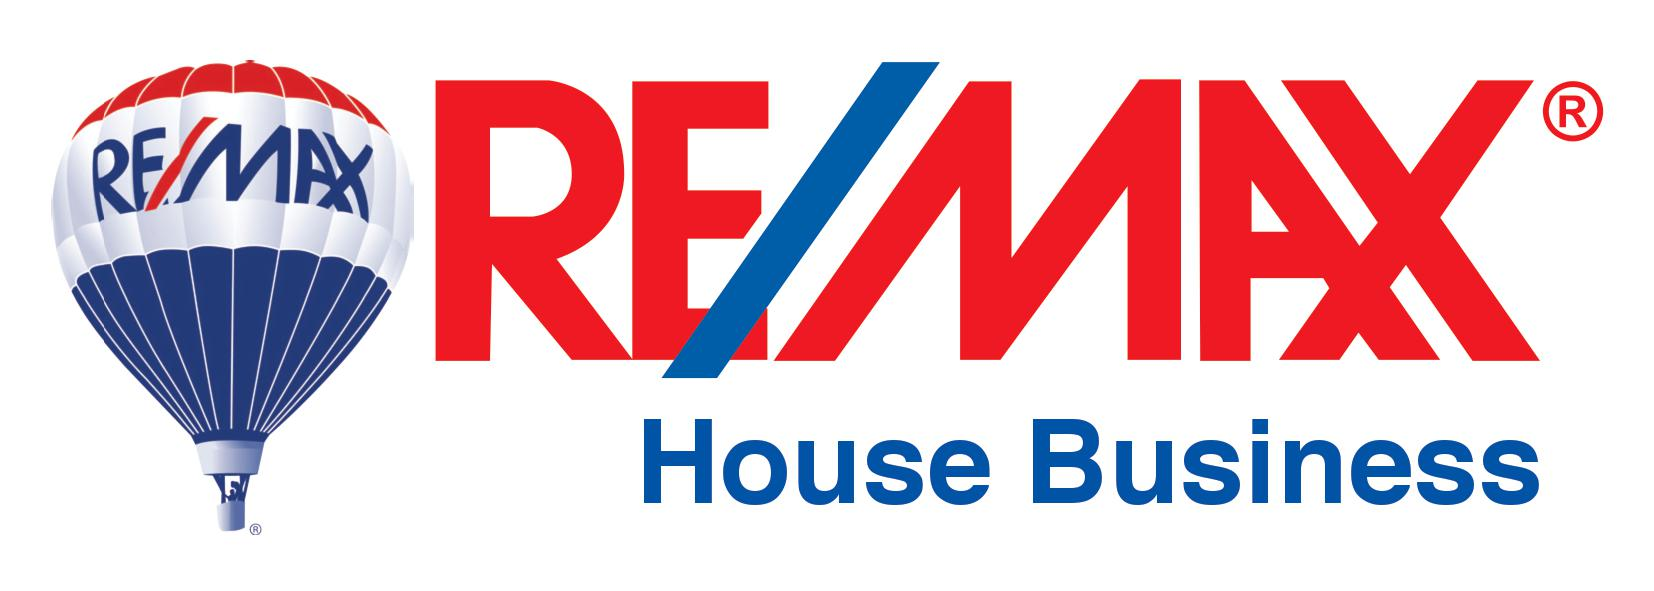 RE/MAX House Business